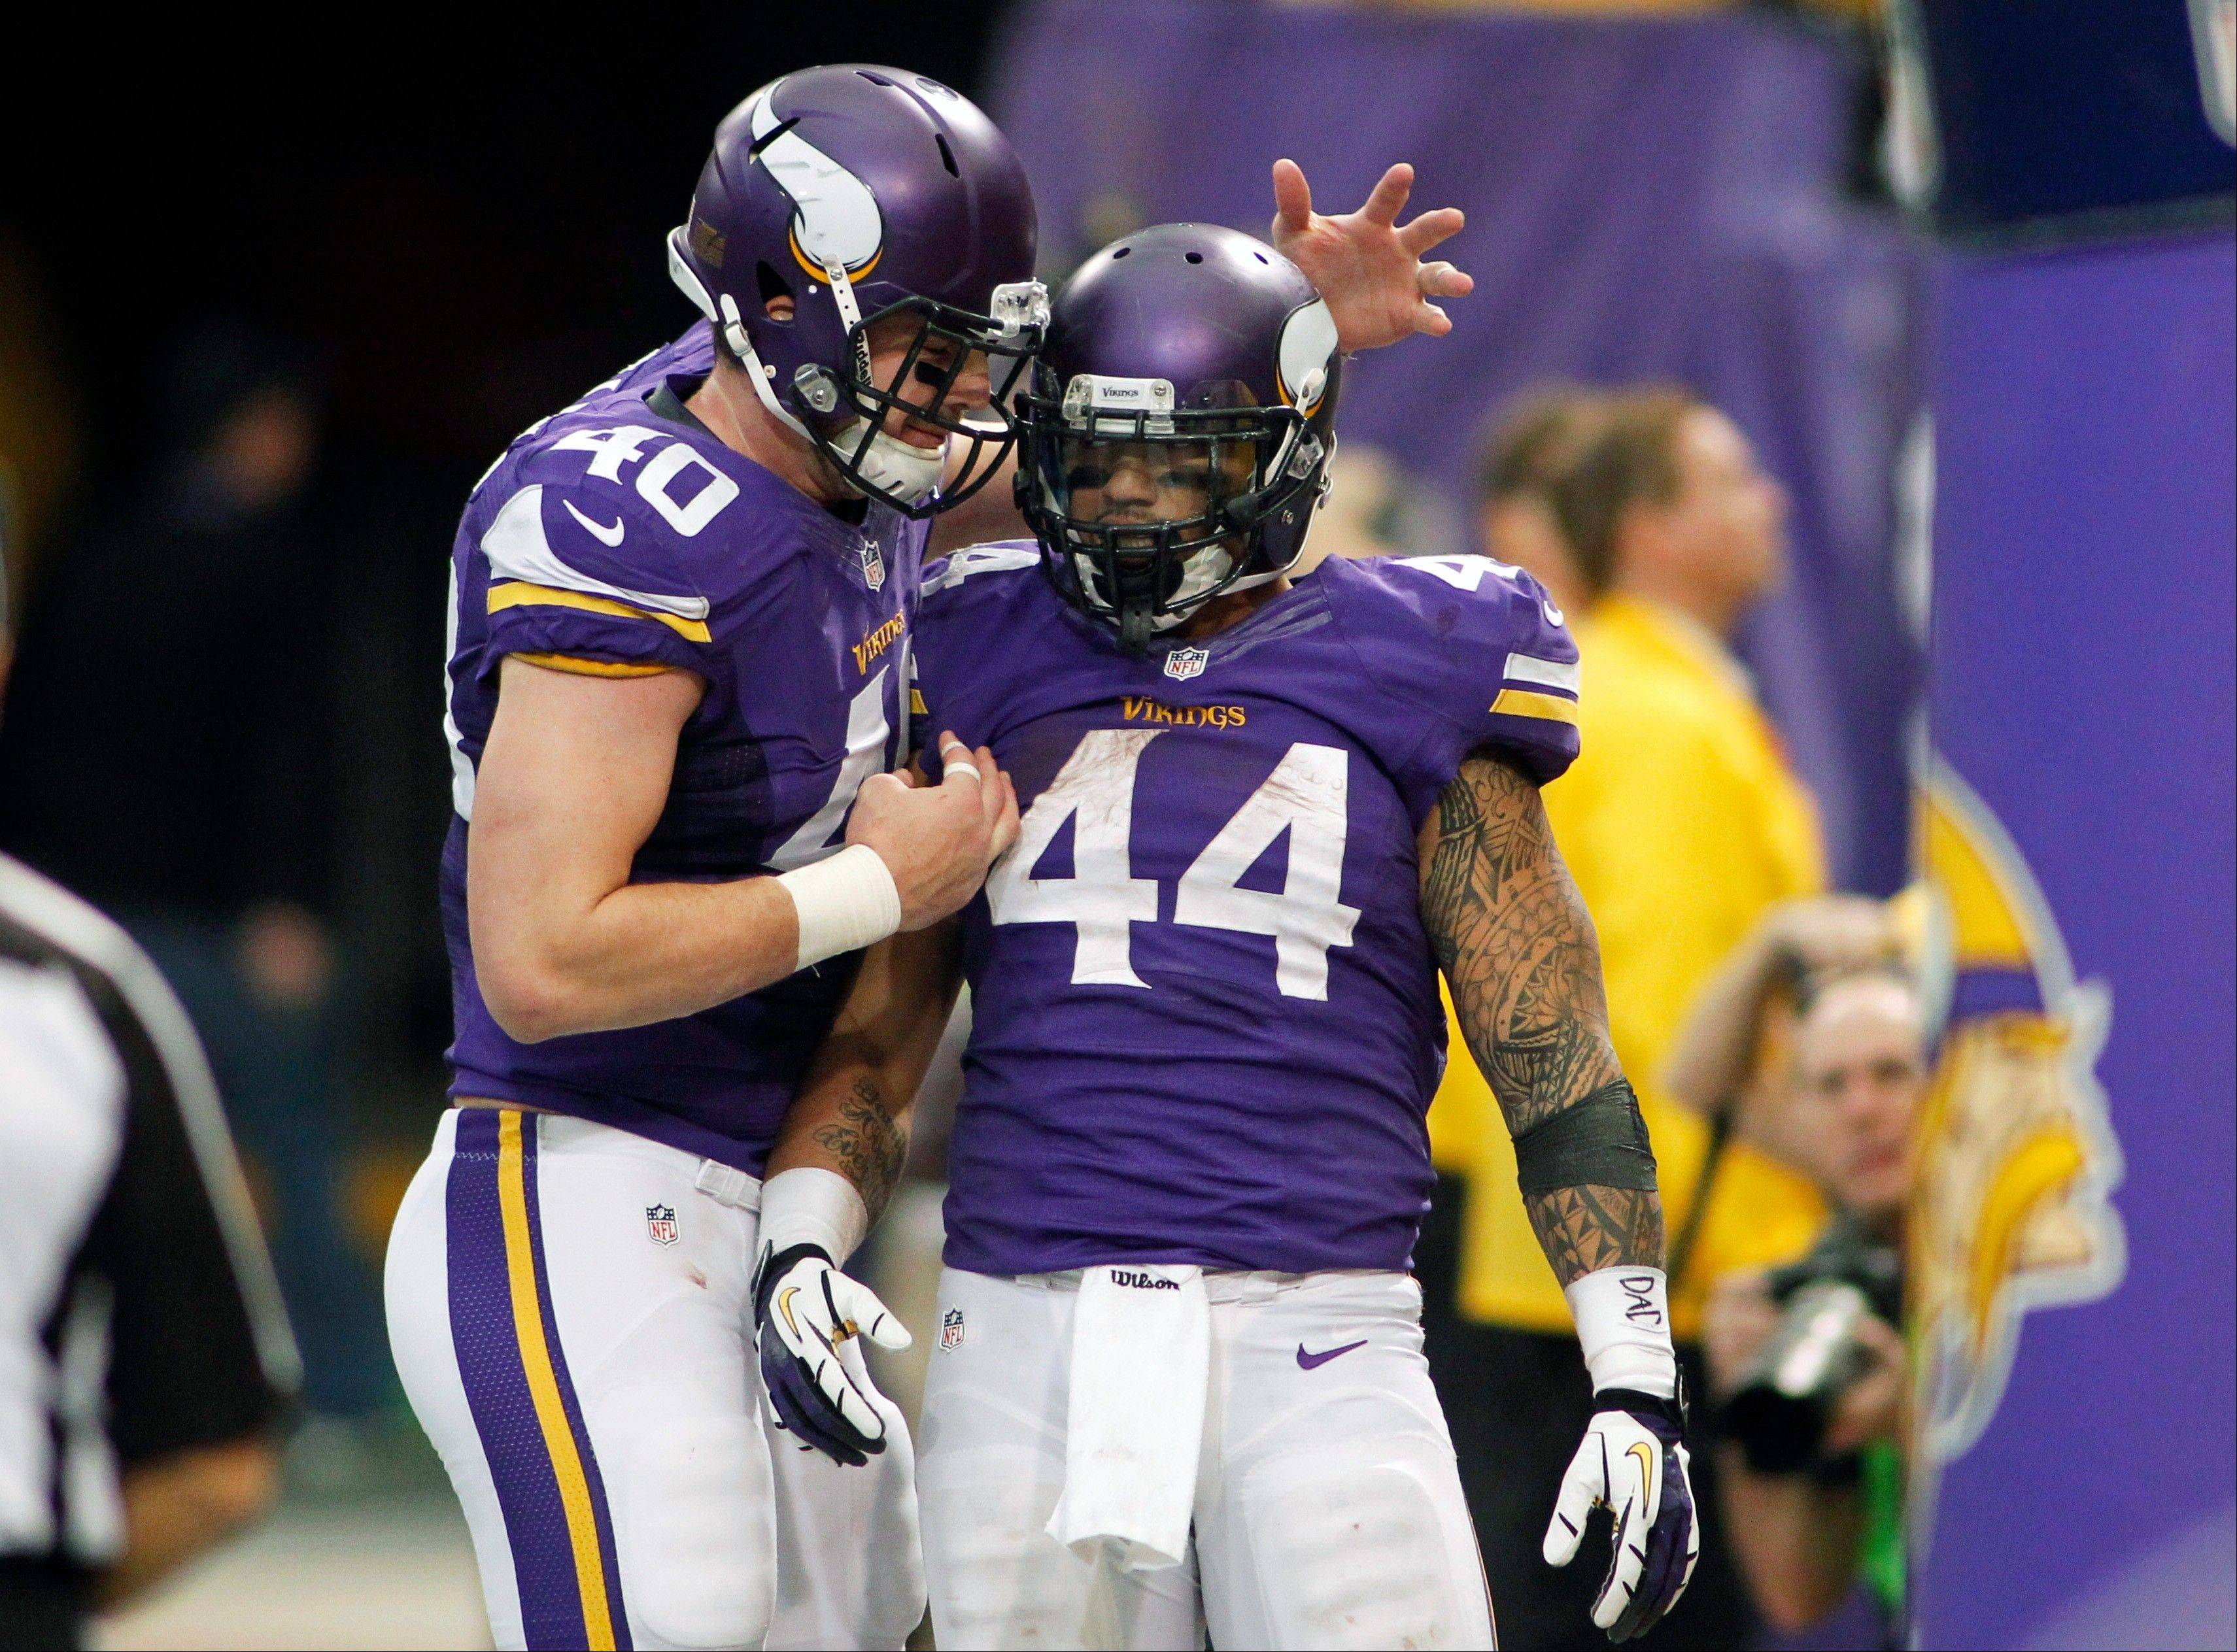 Minnesota Vikings running back Matt Asiata (44) celebrates with teammate Rhett Ellison after scoring on a 1-yard touchdown run during the second half of an NFL football game against the Philadelphia Eagles, Sunday, Dec. 15, 2013, in Minneapolis.